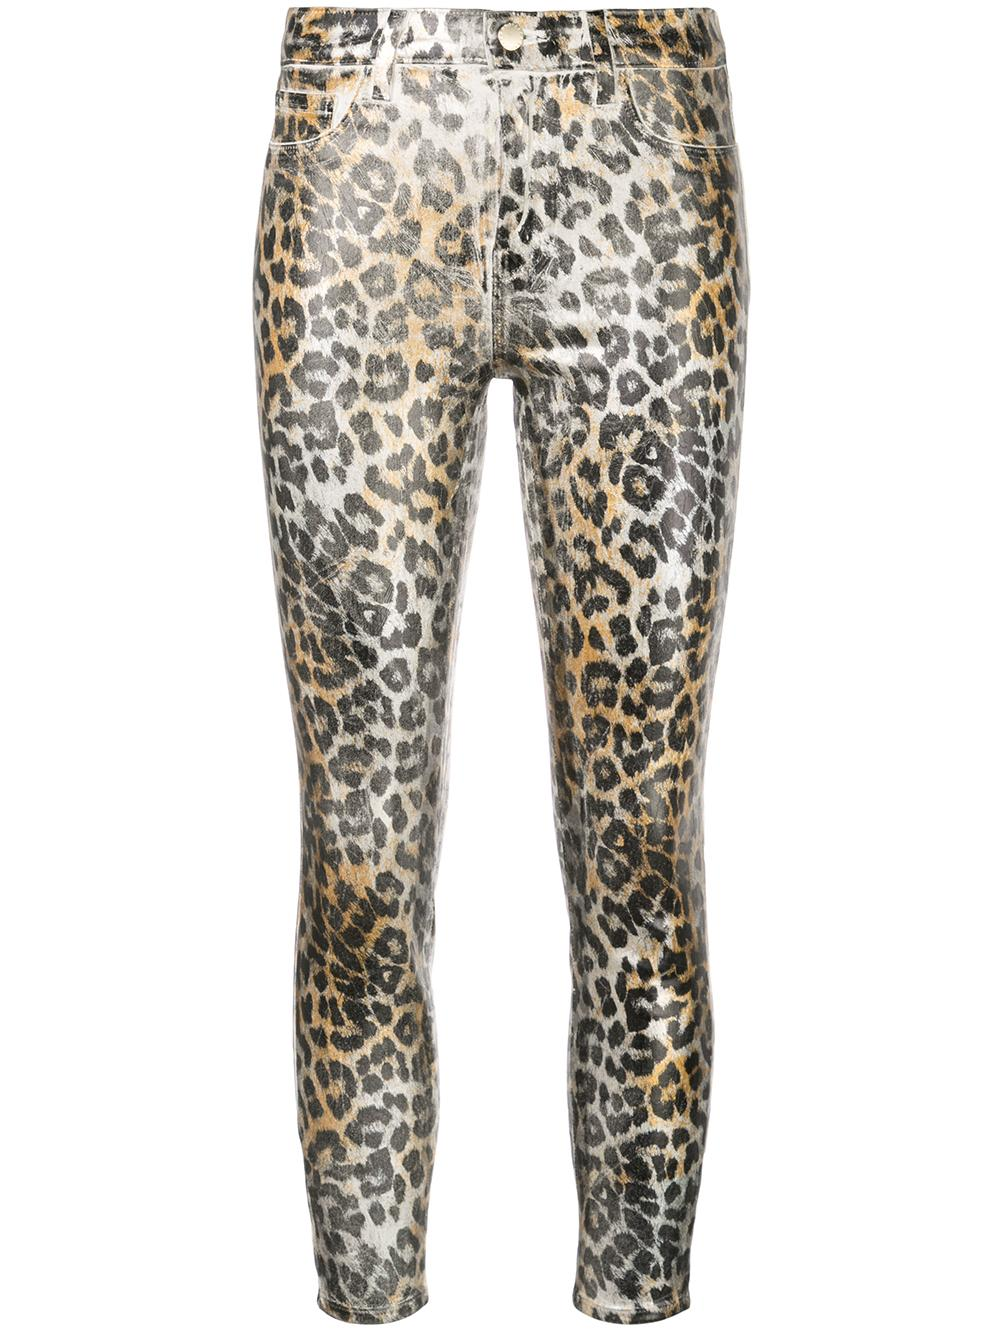 Margot Crocodile Skin Foil Print High Rise